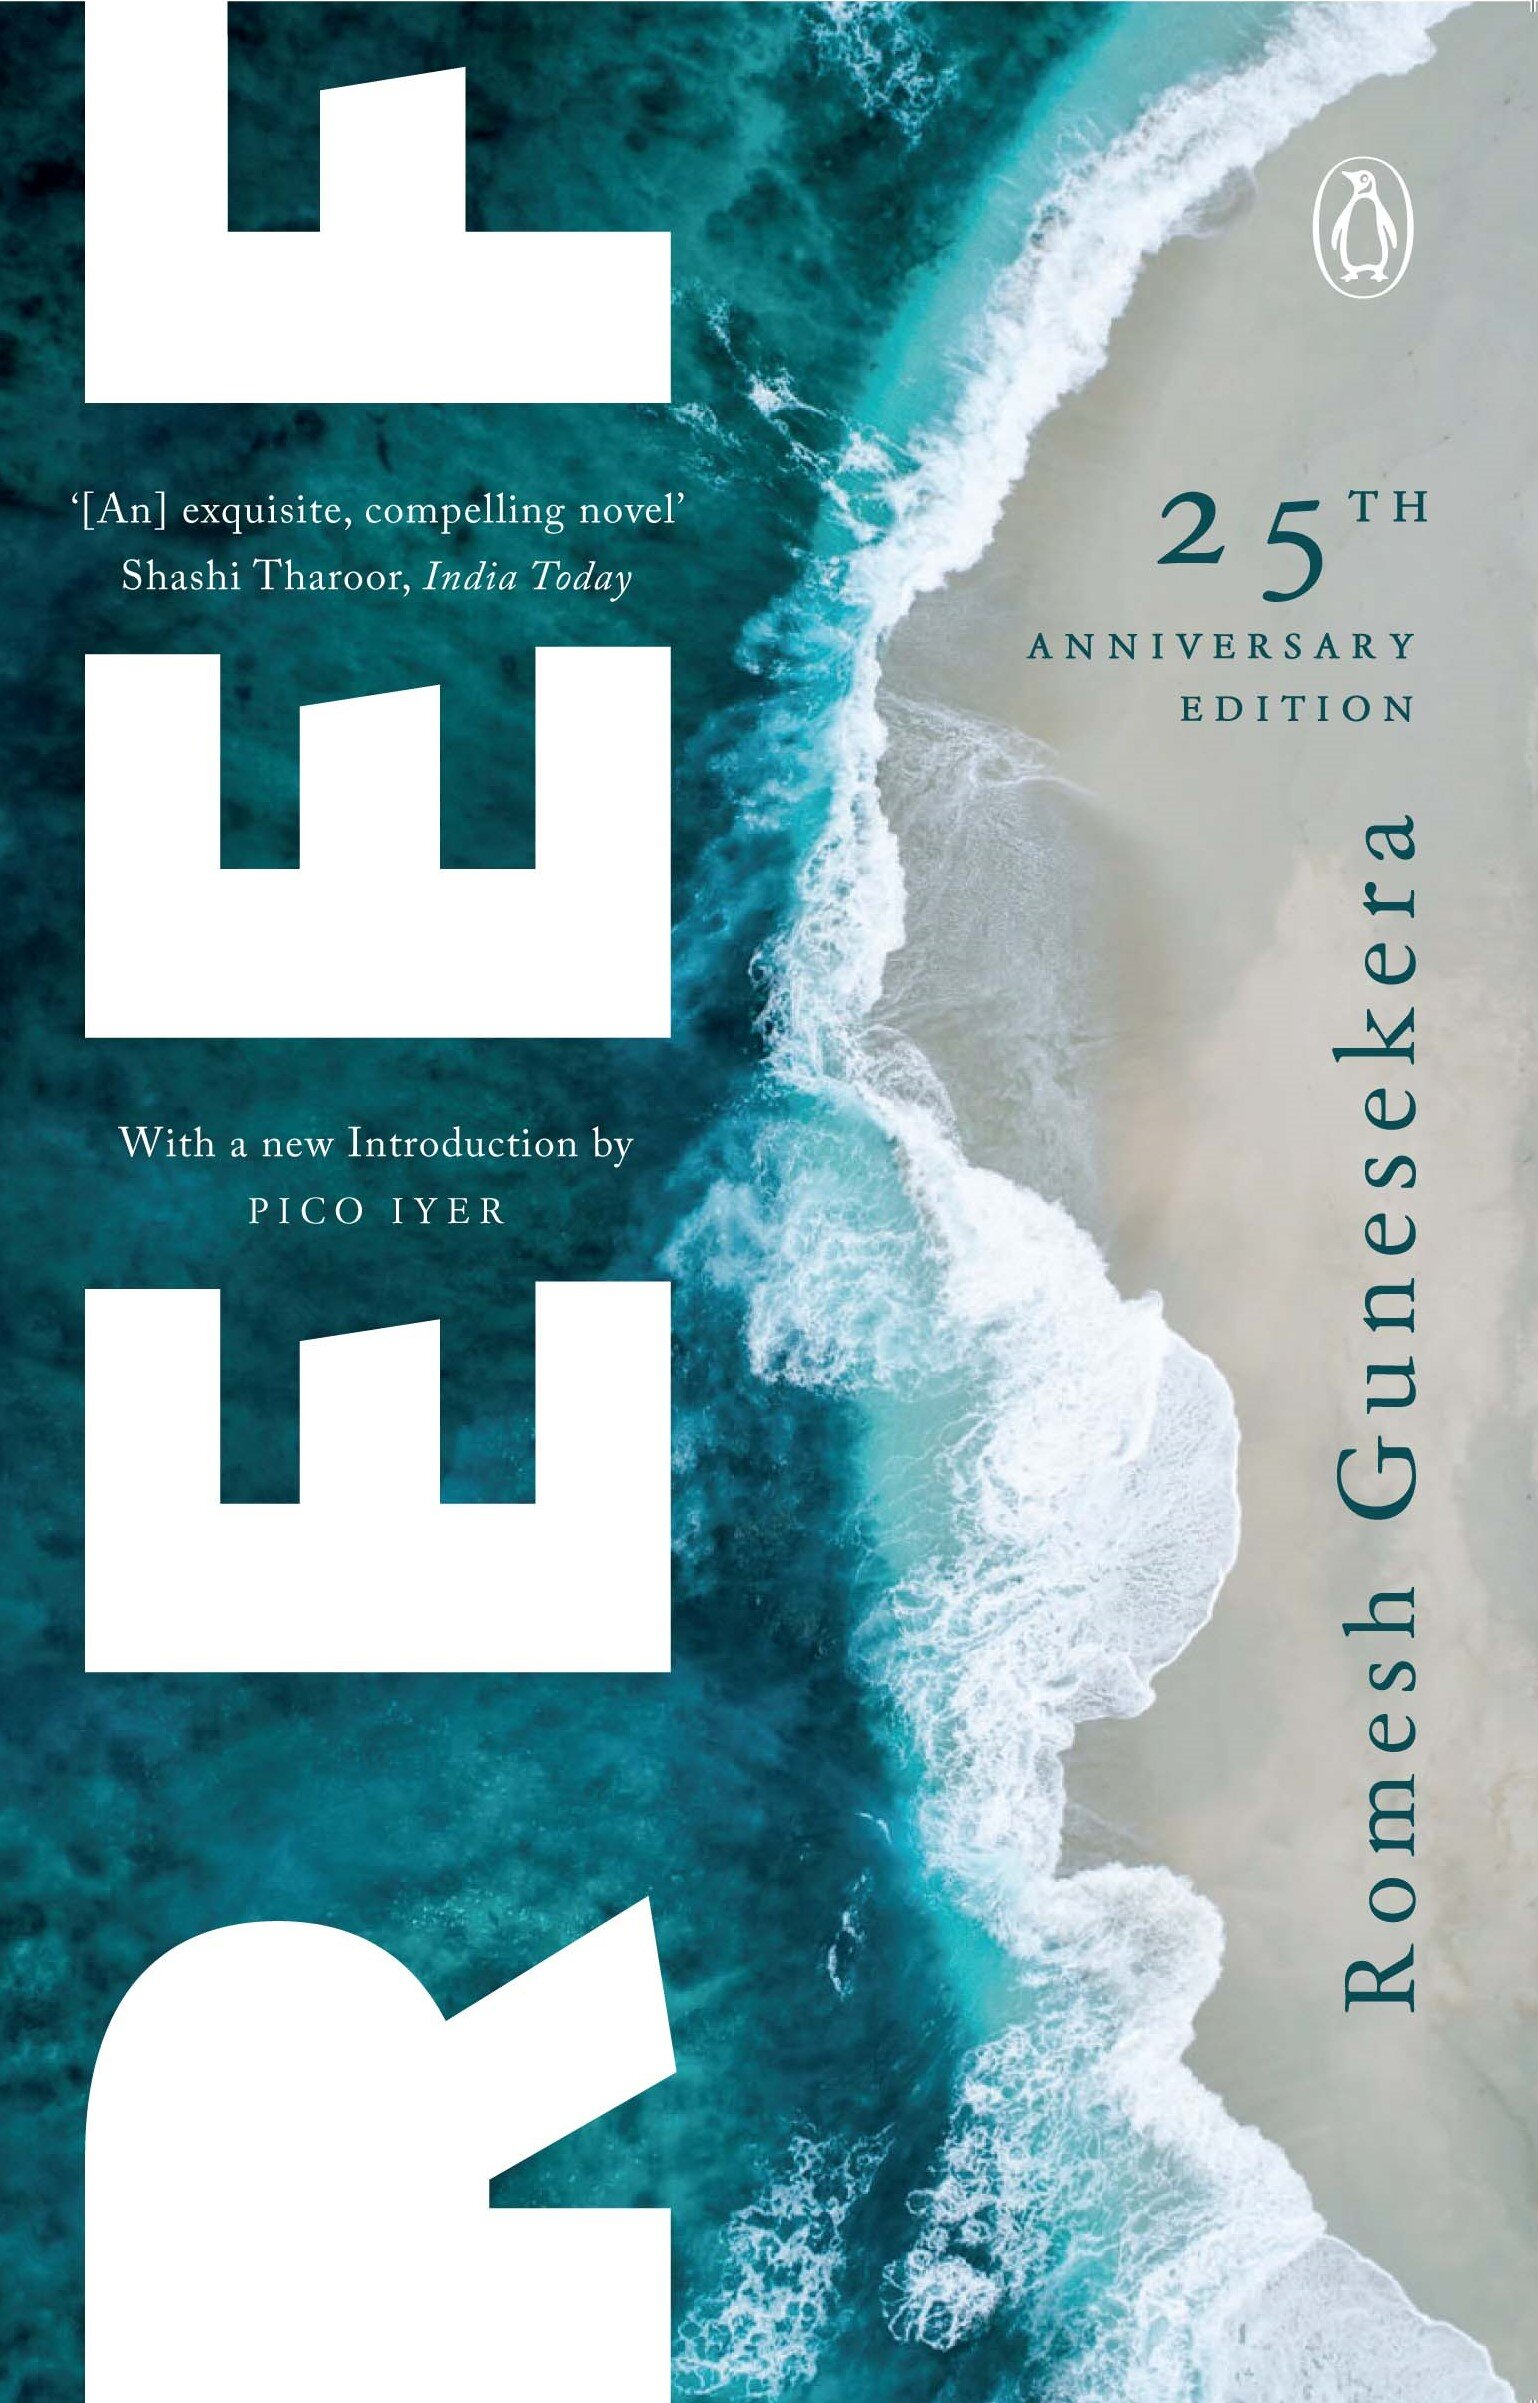 A New edition - The 25th Anniversary Edition of Reef will be published by Penguin India on1 November 2019.